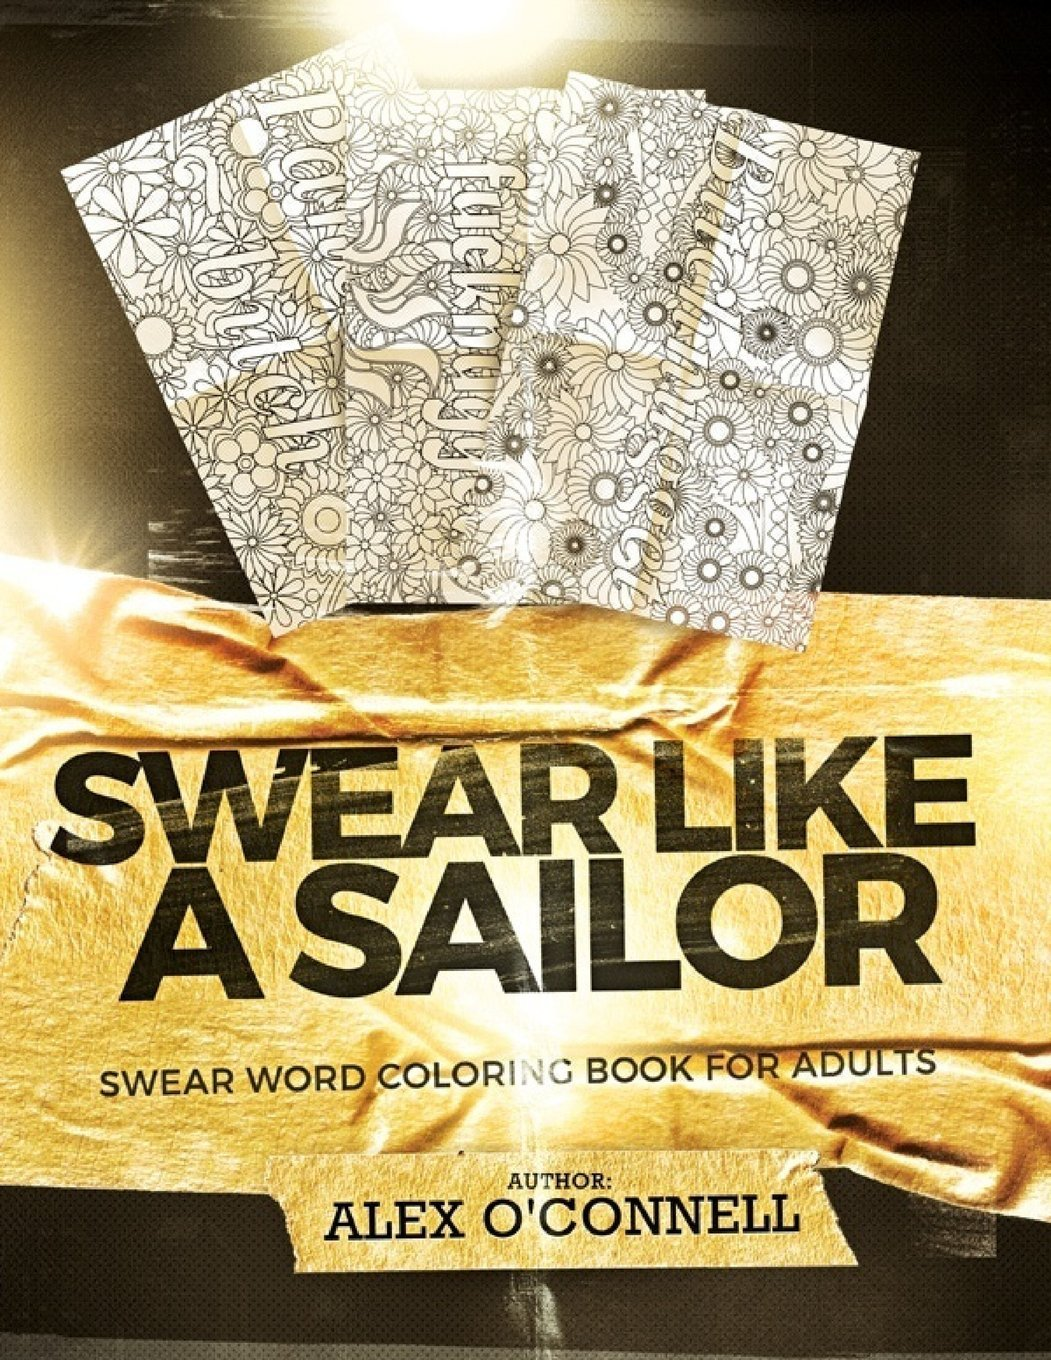 Swear word coloring book volume 1 - Amazon Com Swear Like A Sailor Swear Word Coloring Book For Adults Sweary Coloring Books Volume 3 9781532951756 Alex O Connell Ffelife Swear Word